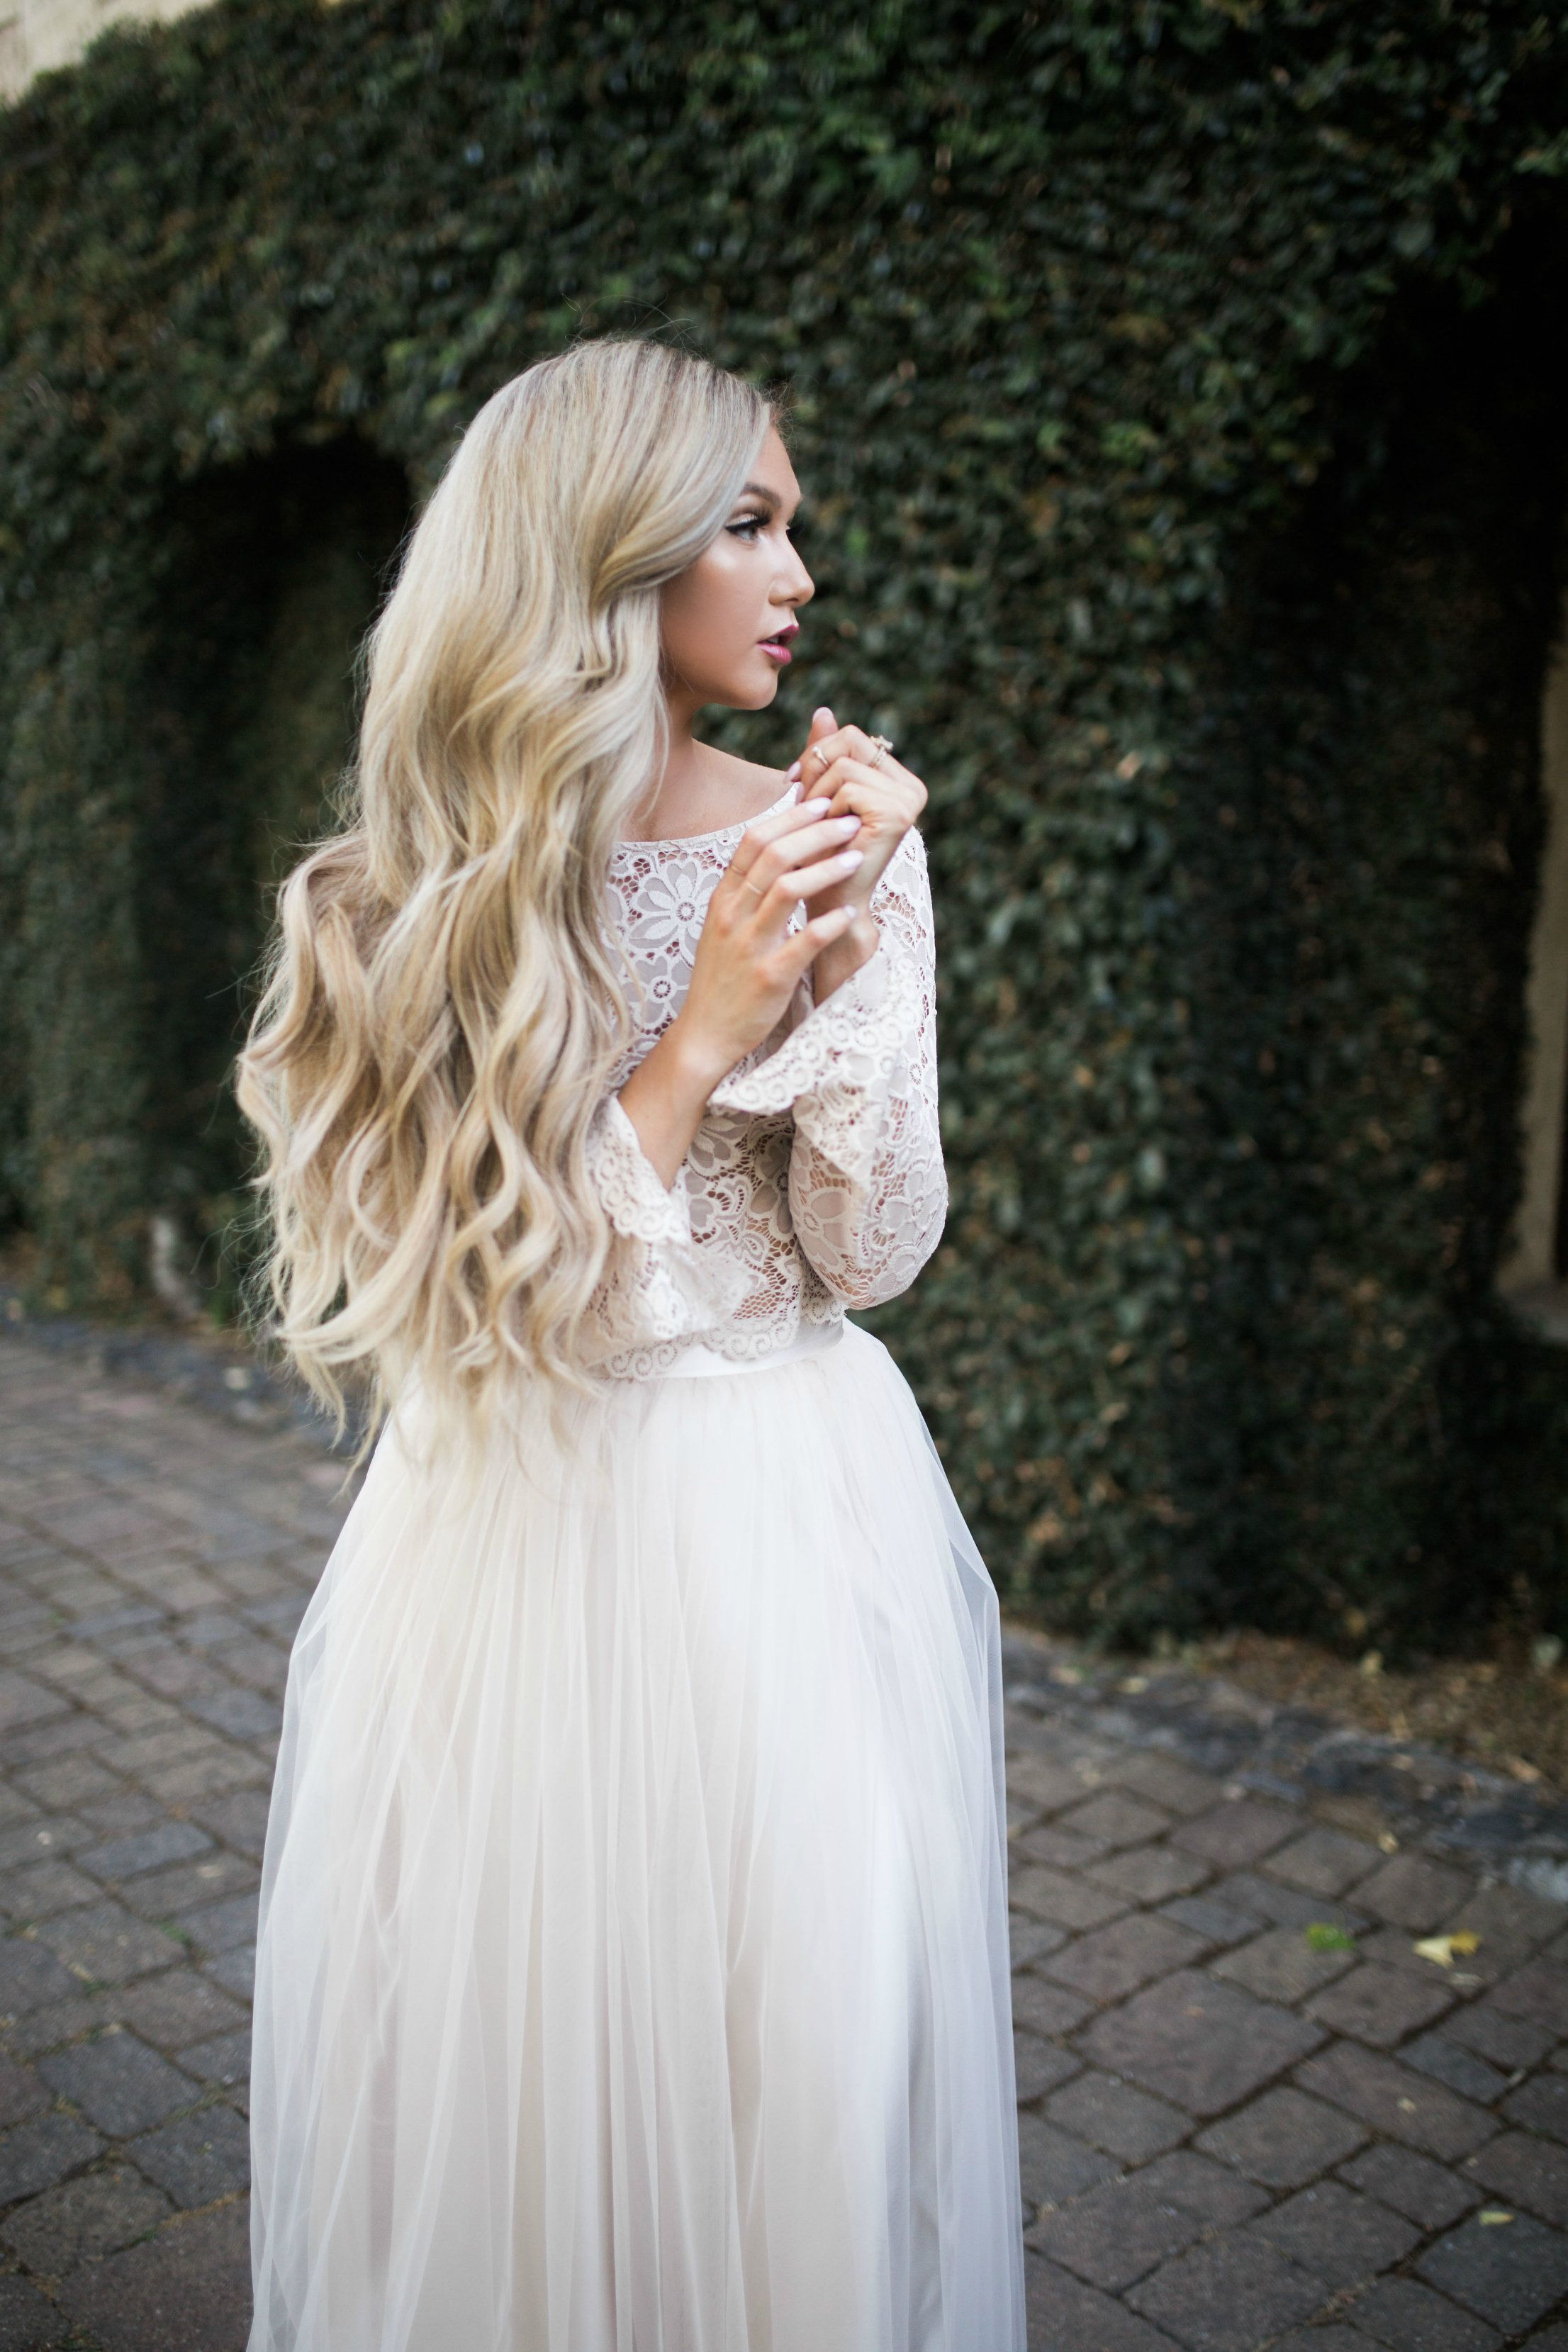 Willow maxi tulle skirt and camilla lace top in pale nude by bliss